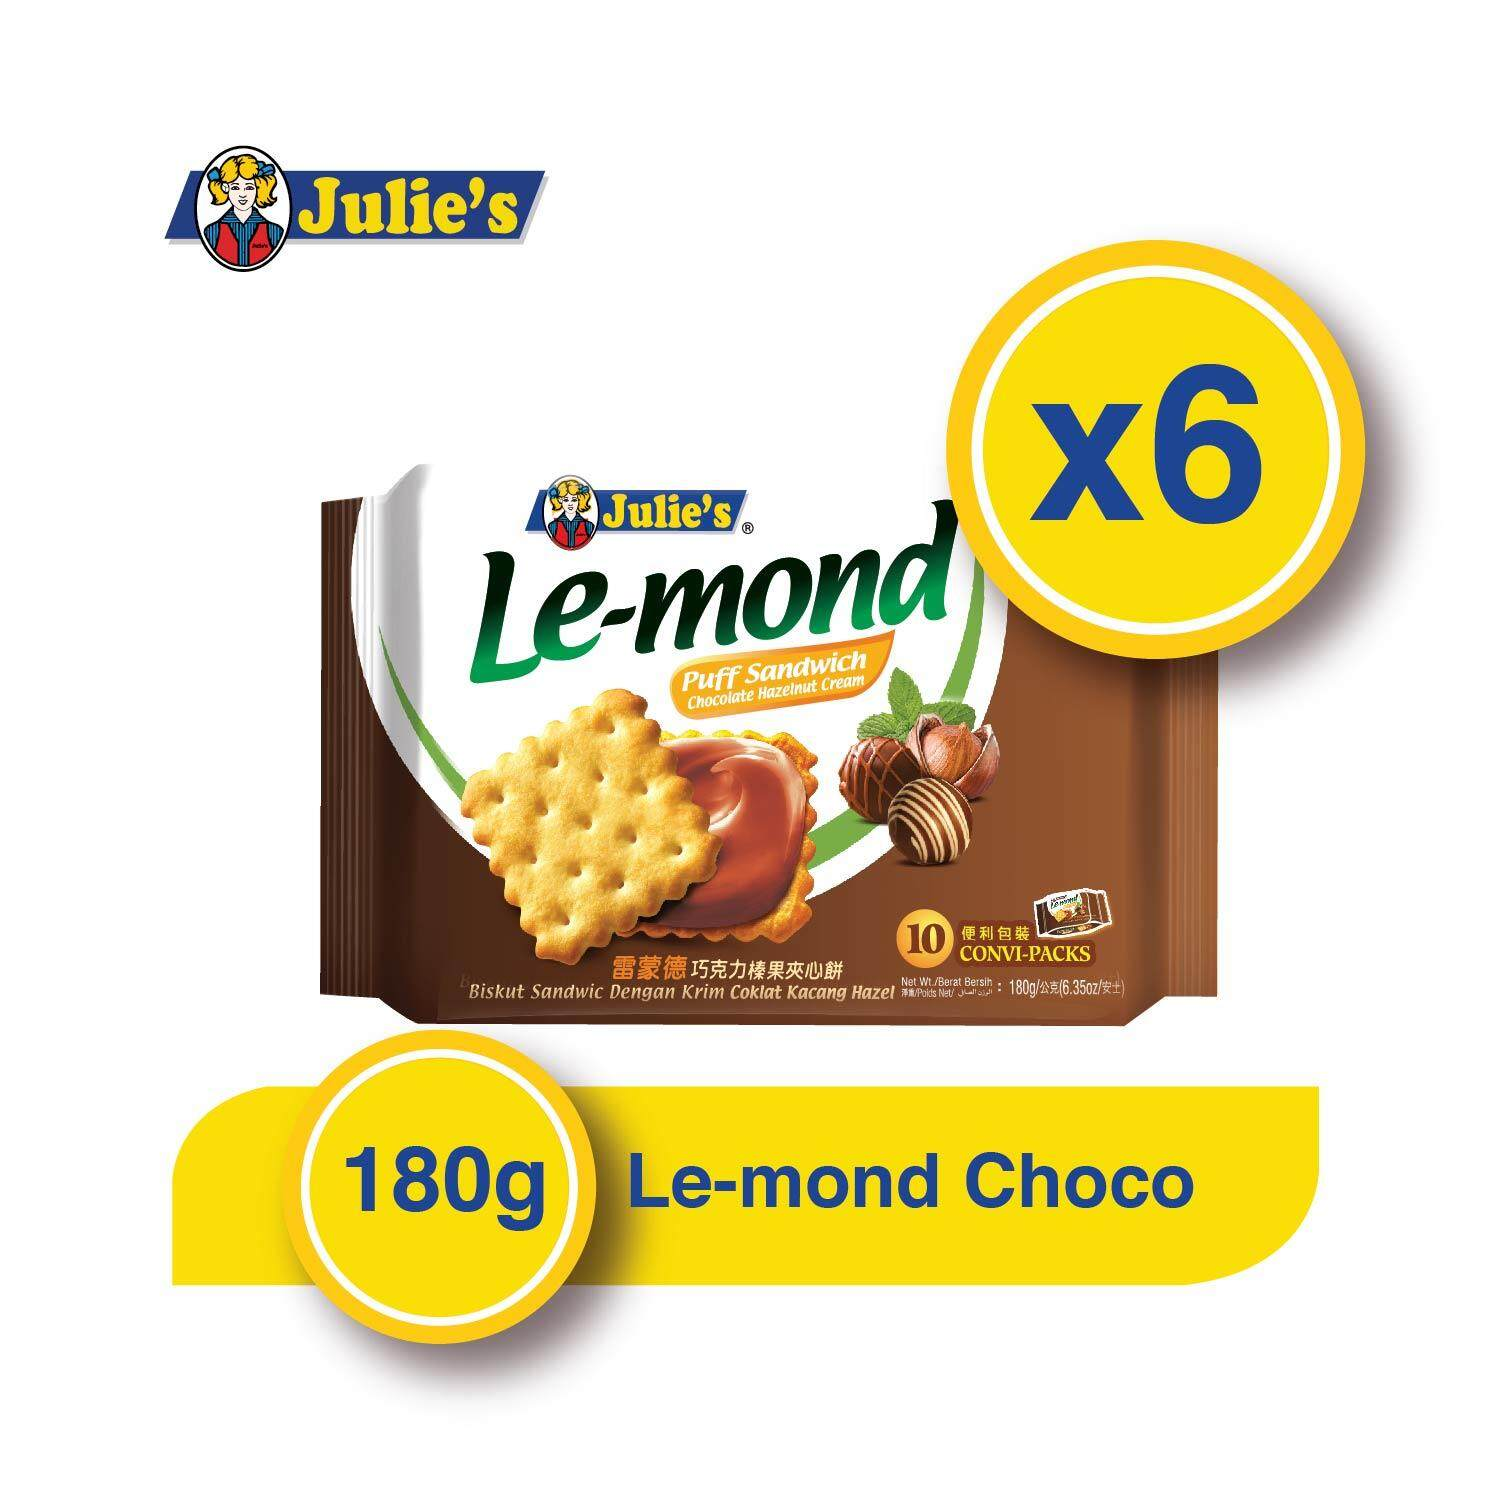 Julie's Le-mond Chocolate Sandwich Biscuit 180g x 6 packs + Free 5 pack Convi pack Biscuit